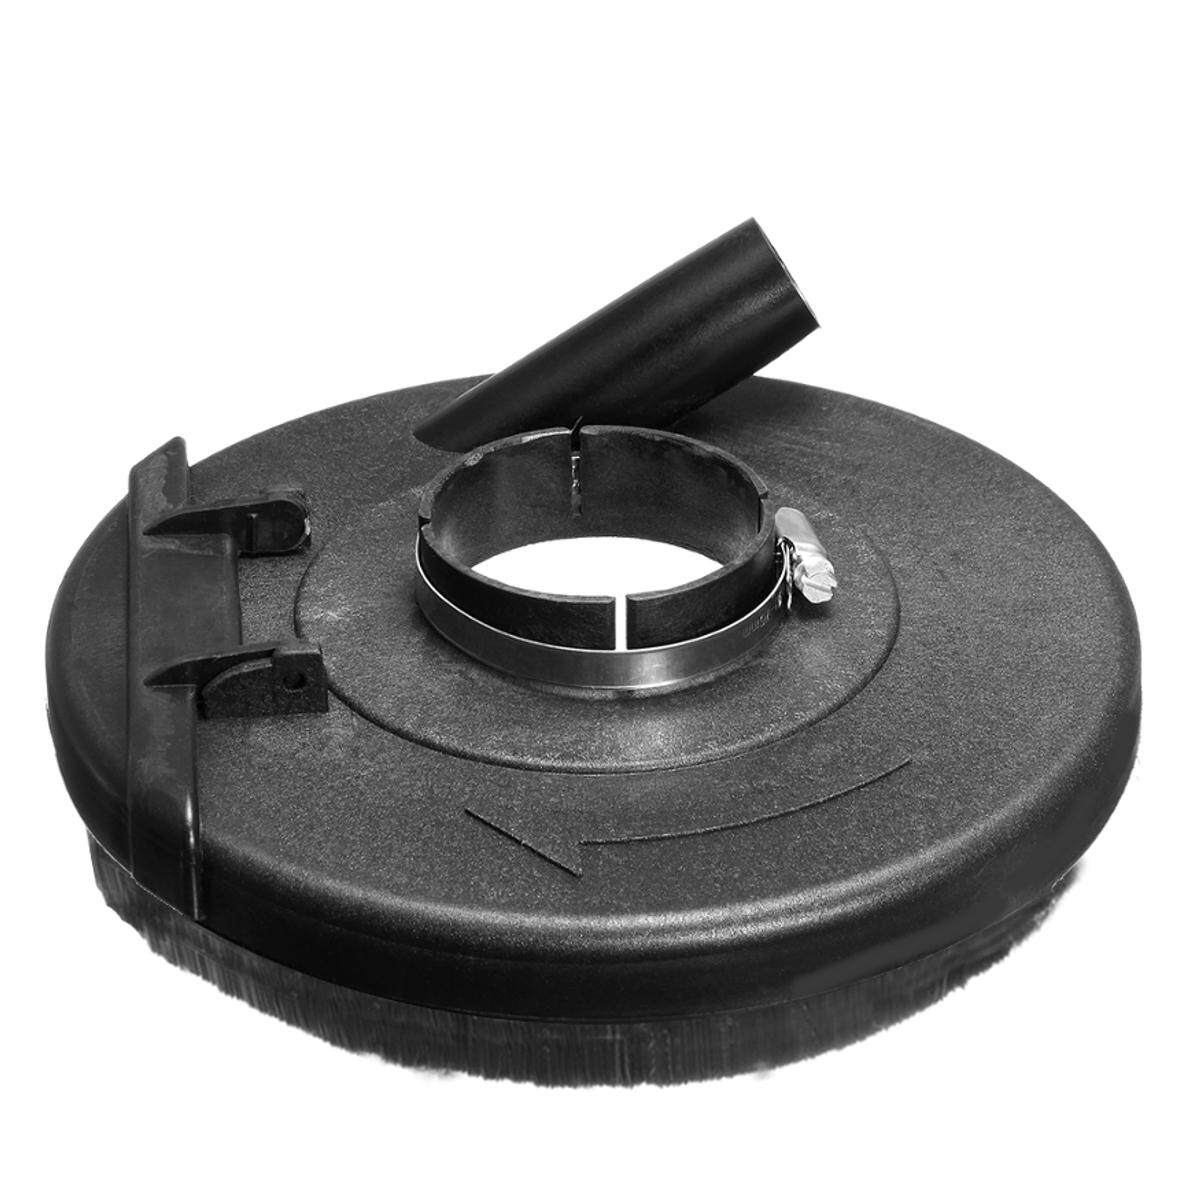 vacuum dust shroud cover for angle grinder hand grinder convertible High 1# 38mm(1.5) - intl